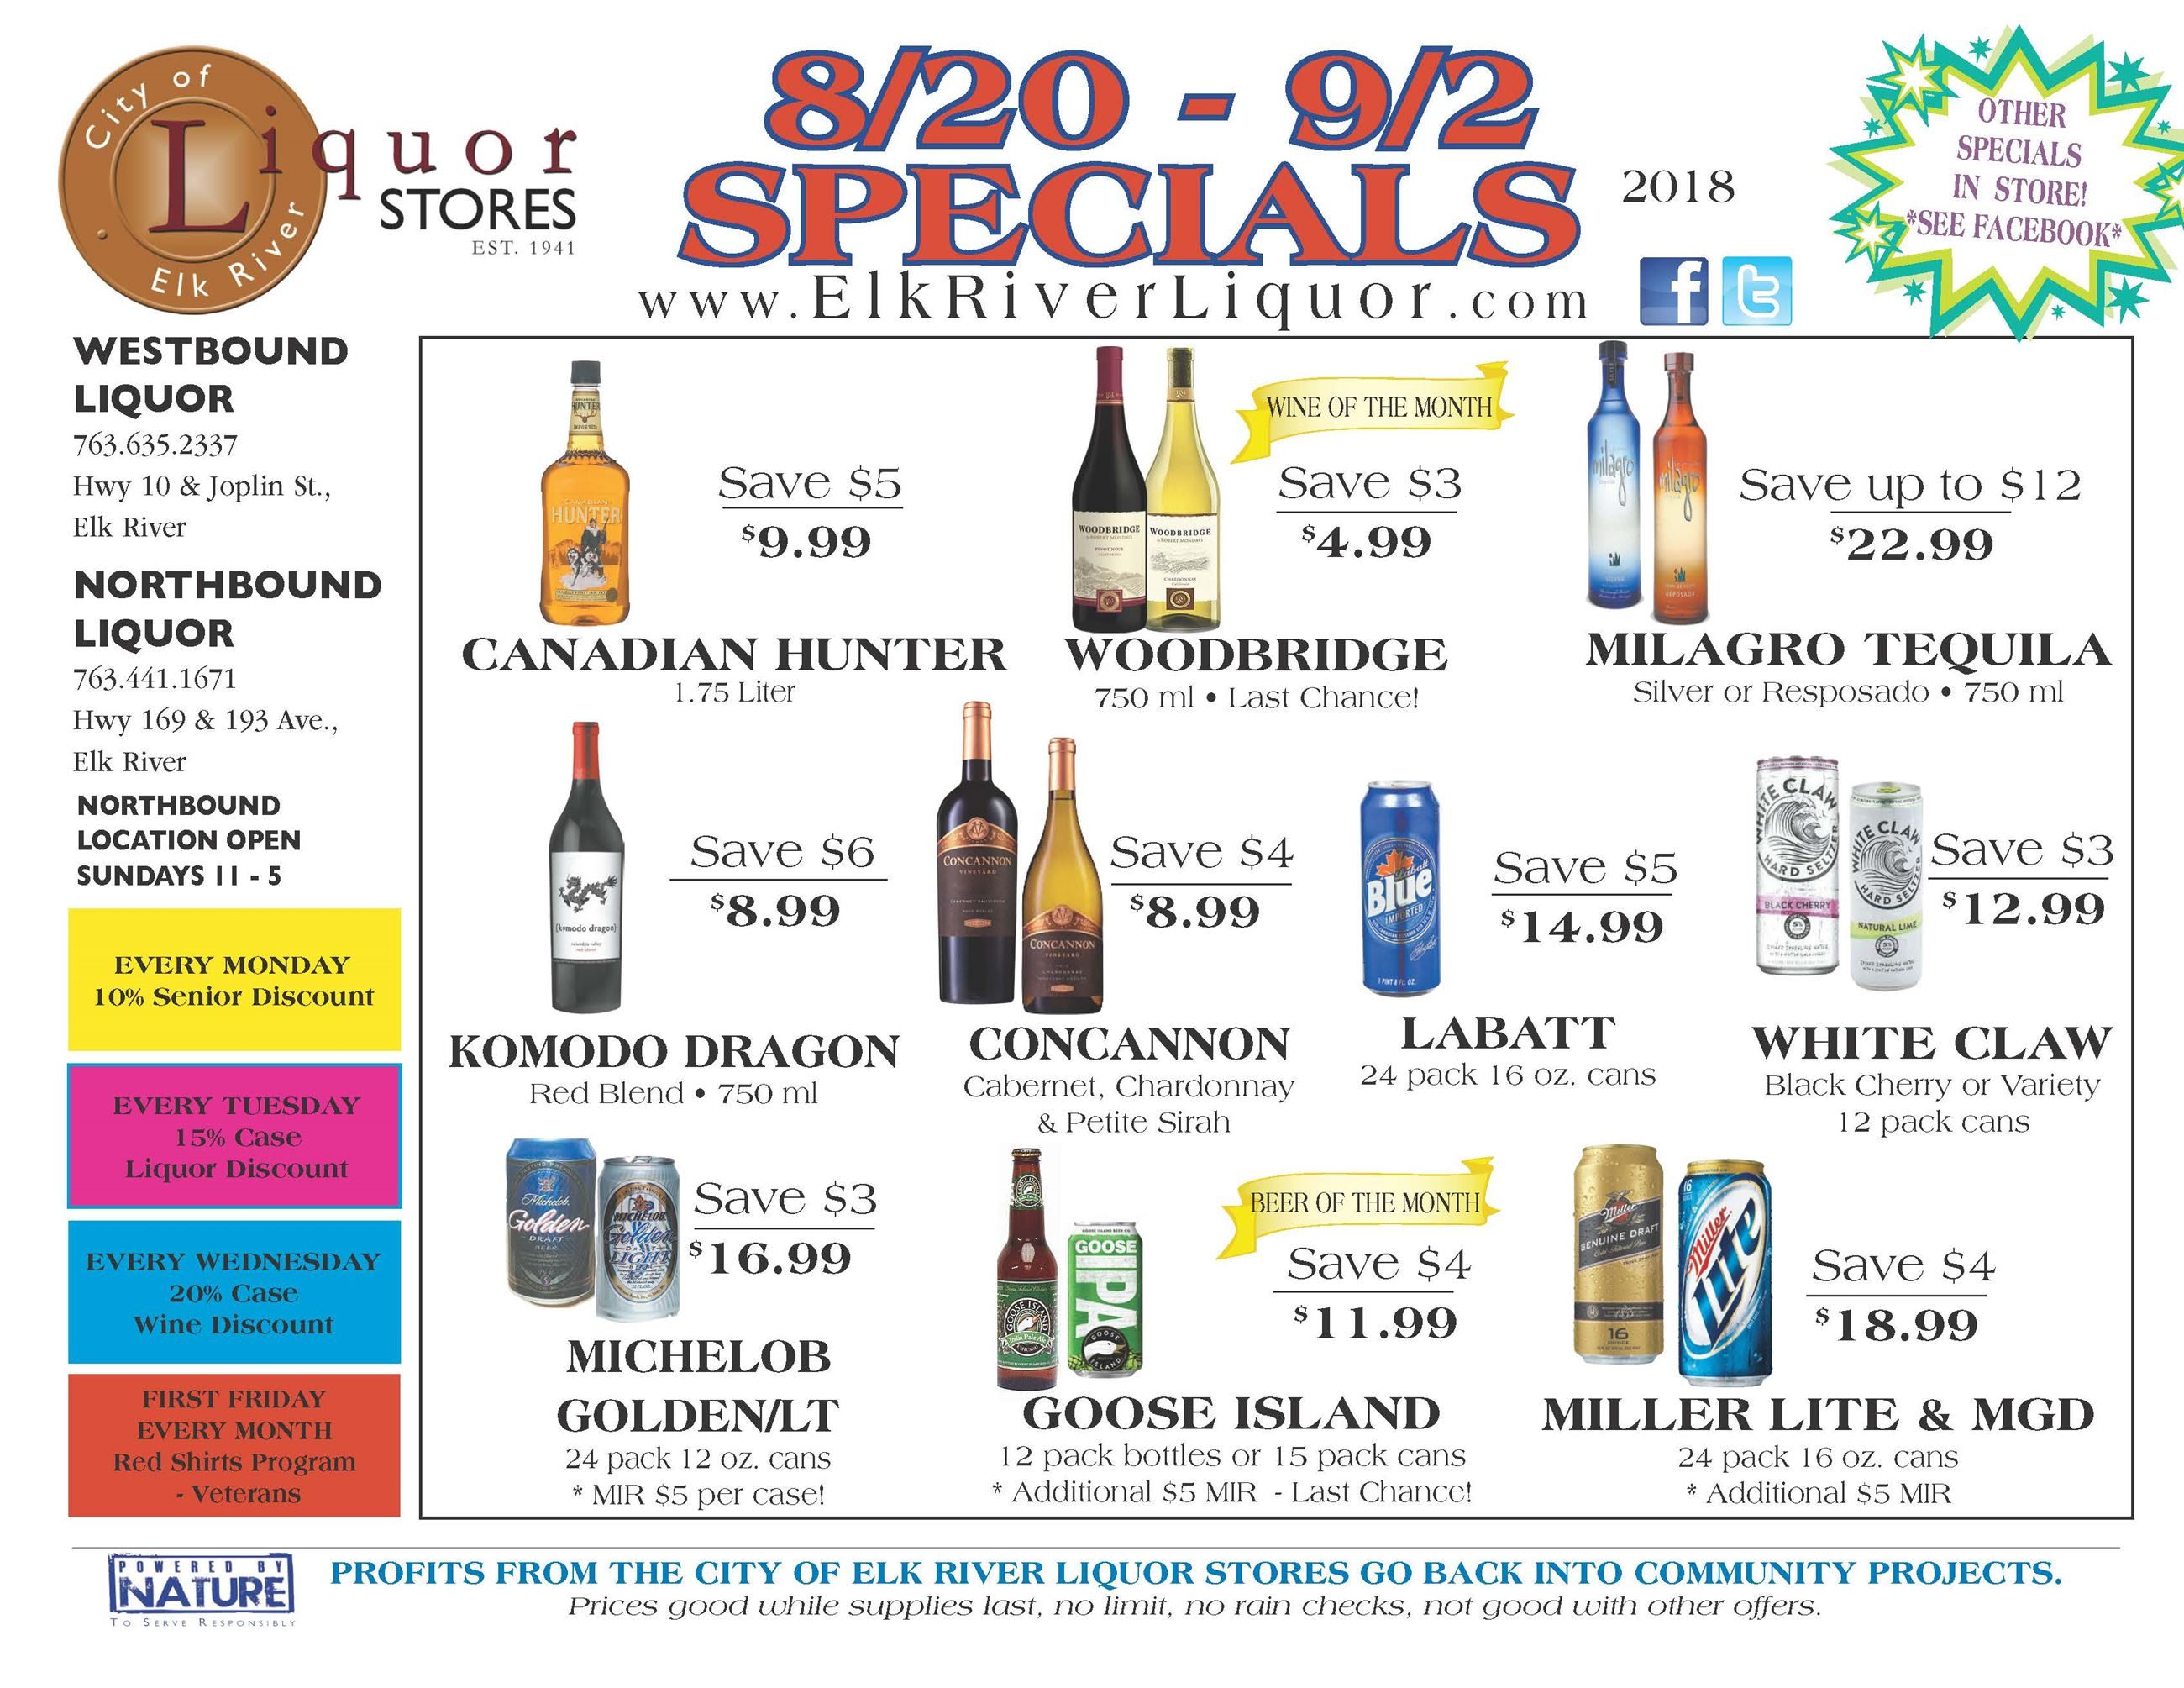 Northbound Liquor Specials for August - September